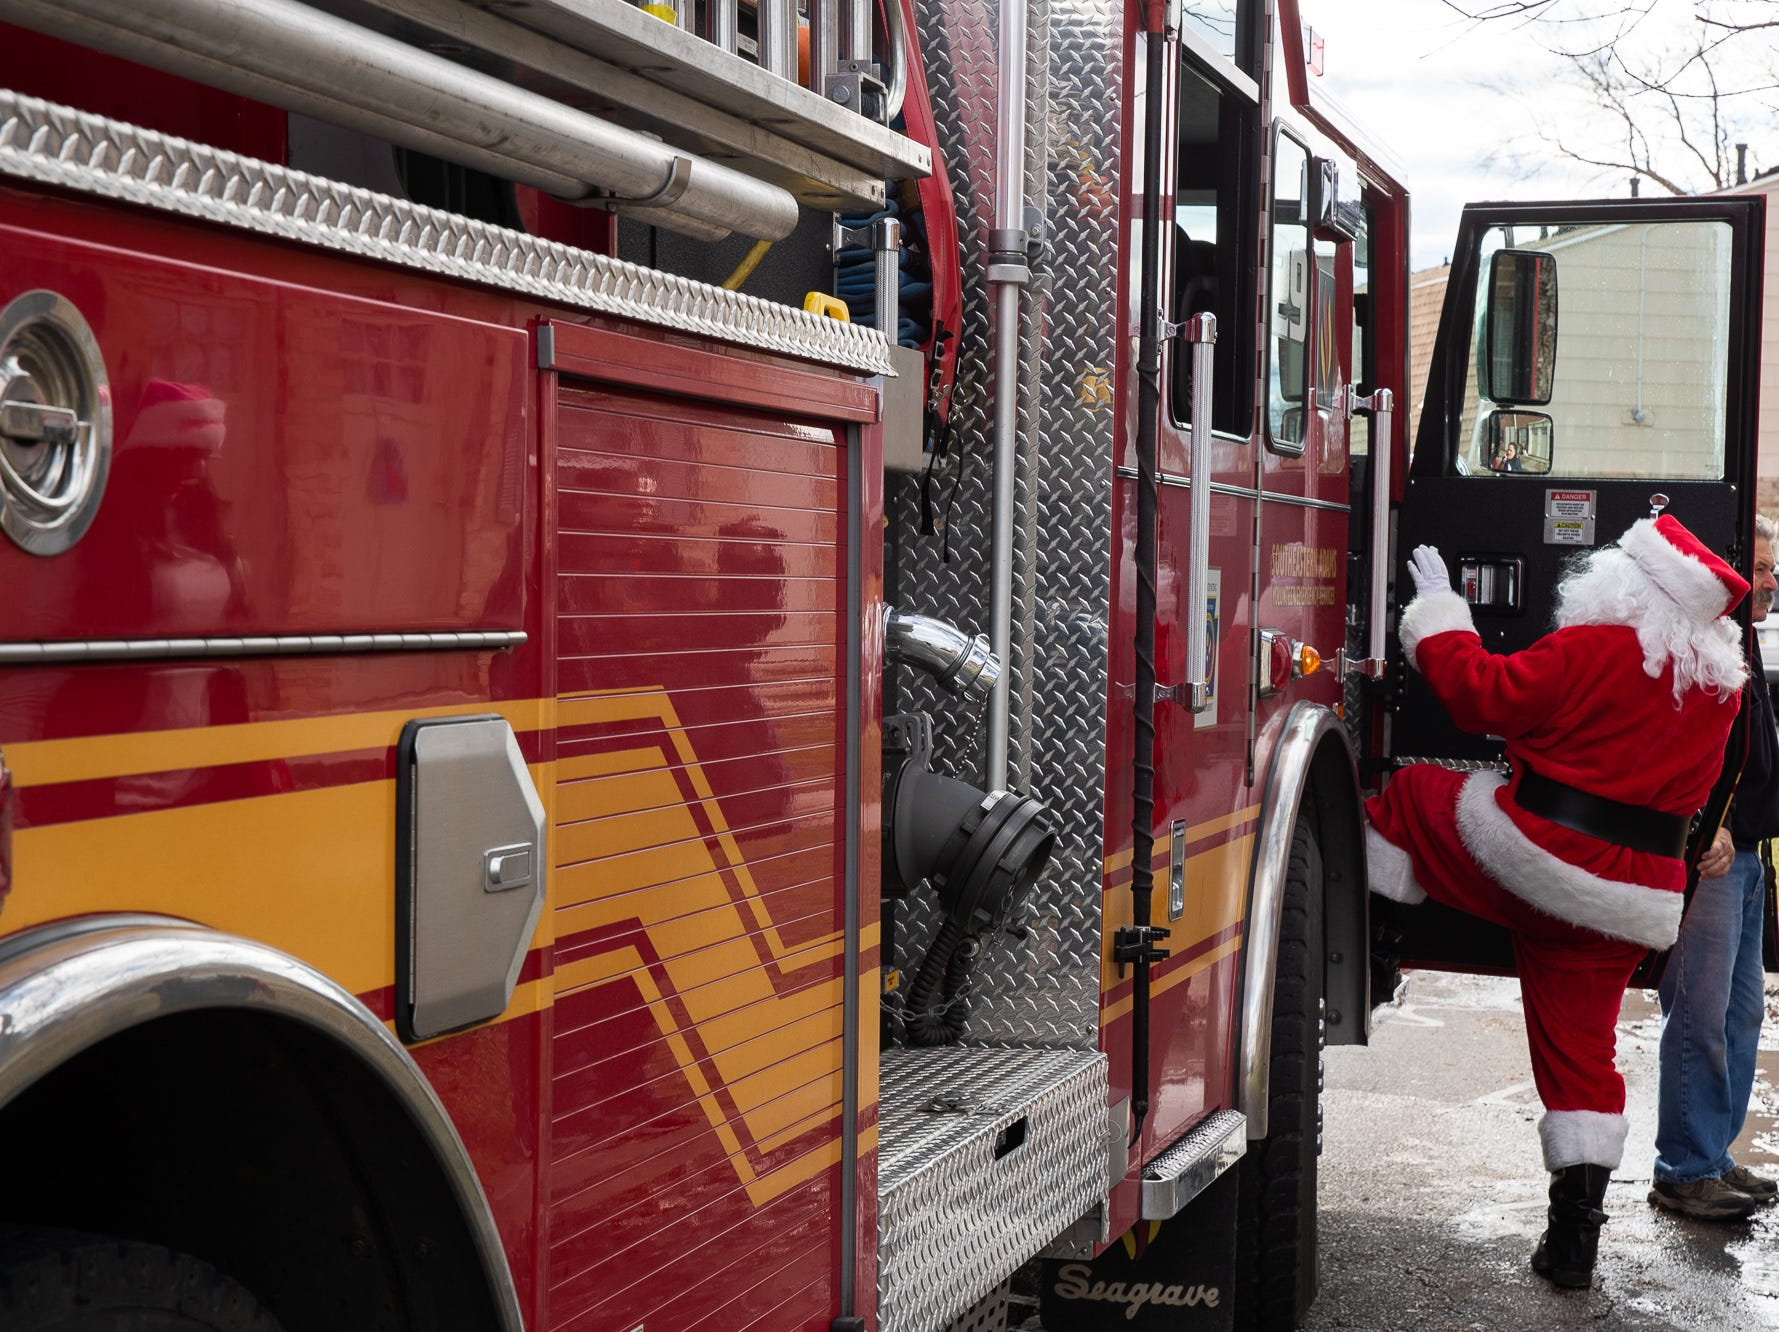 Santa, played by firefighter Wayne Reid, hops on his fire engine during the S.A.V.E.S Project Santa, Saturday, Dec. 22, 2018, in McSherrystown Borough. The S.A.V.E.S Project Santa donated food, toys, and clothing to 12 local families in need.